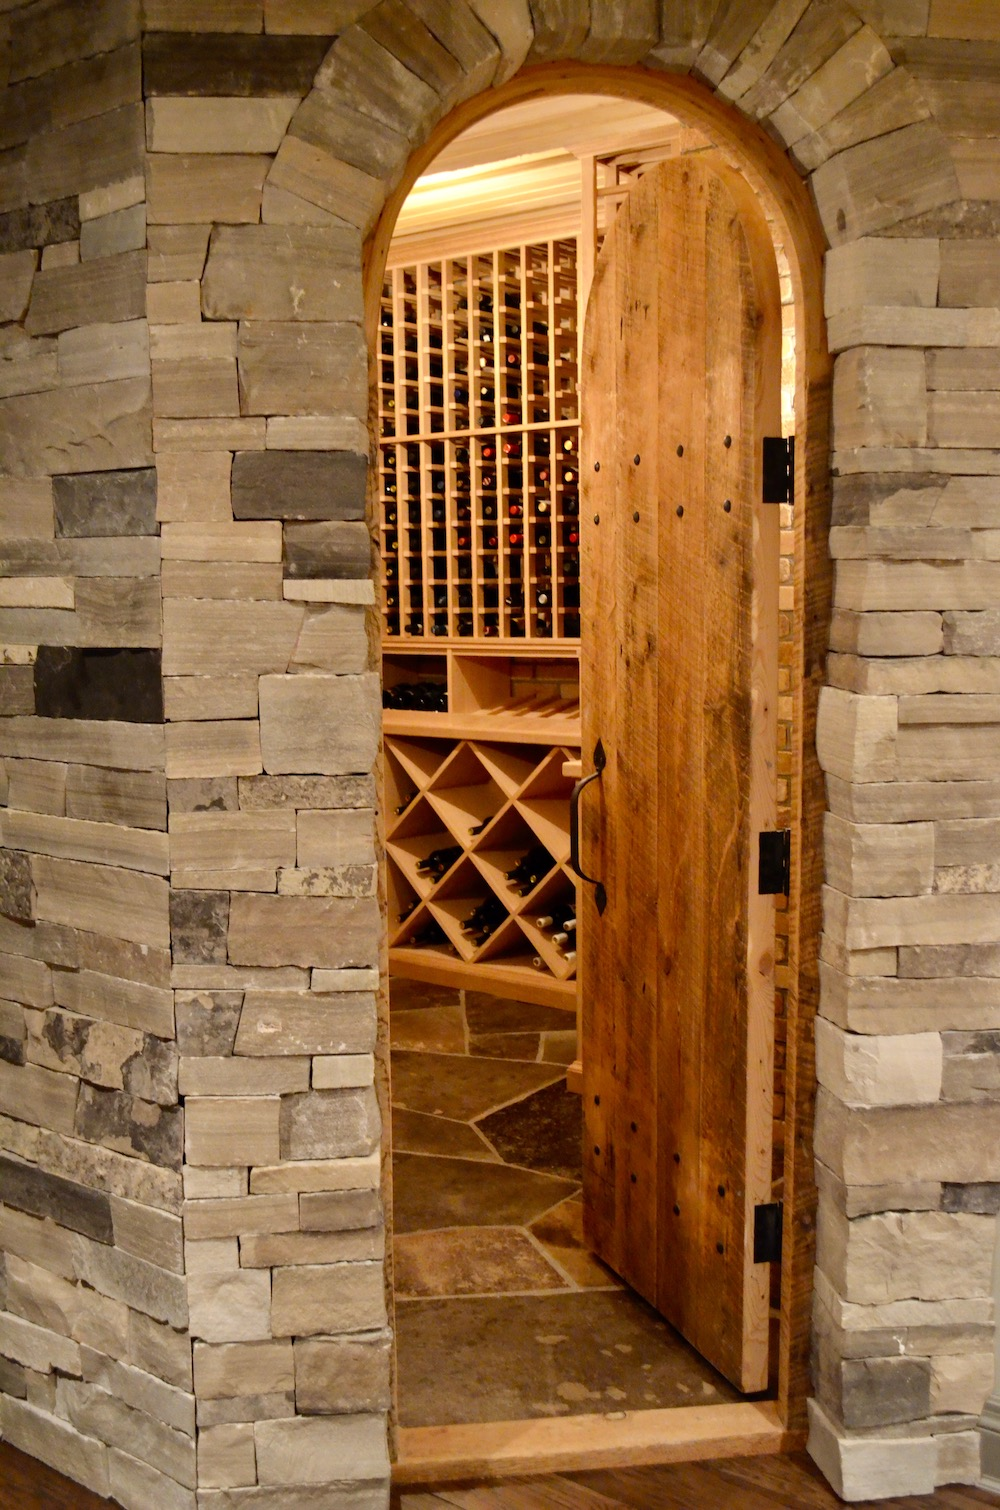 wine cellar stone arched top door rustic stone flooring.jpeg